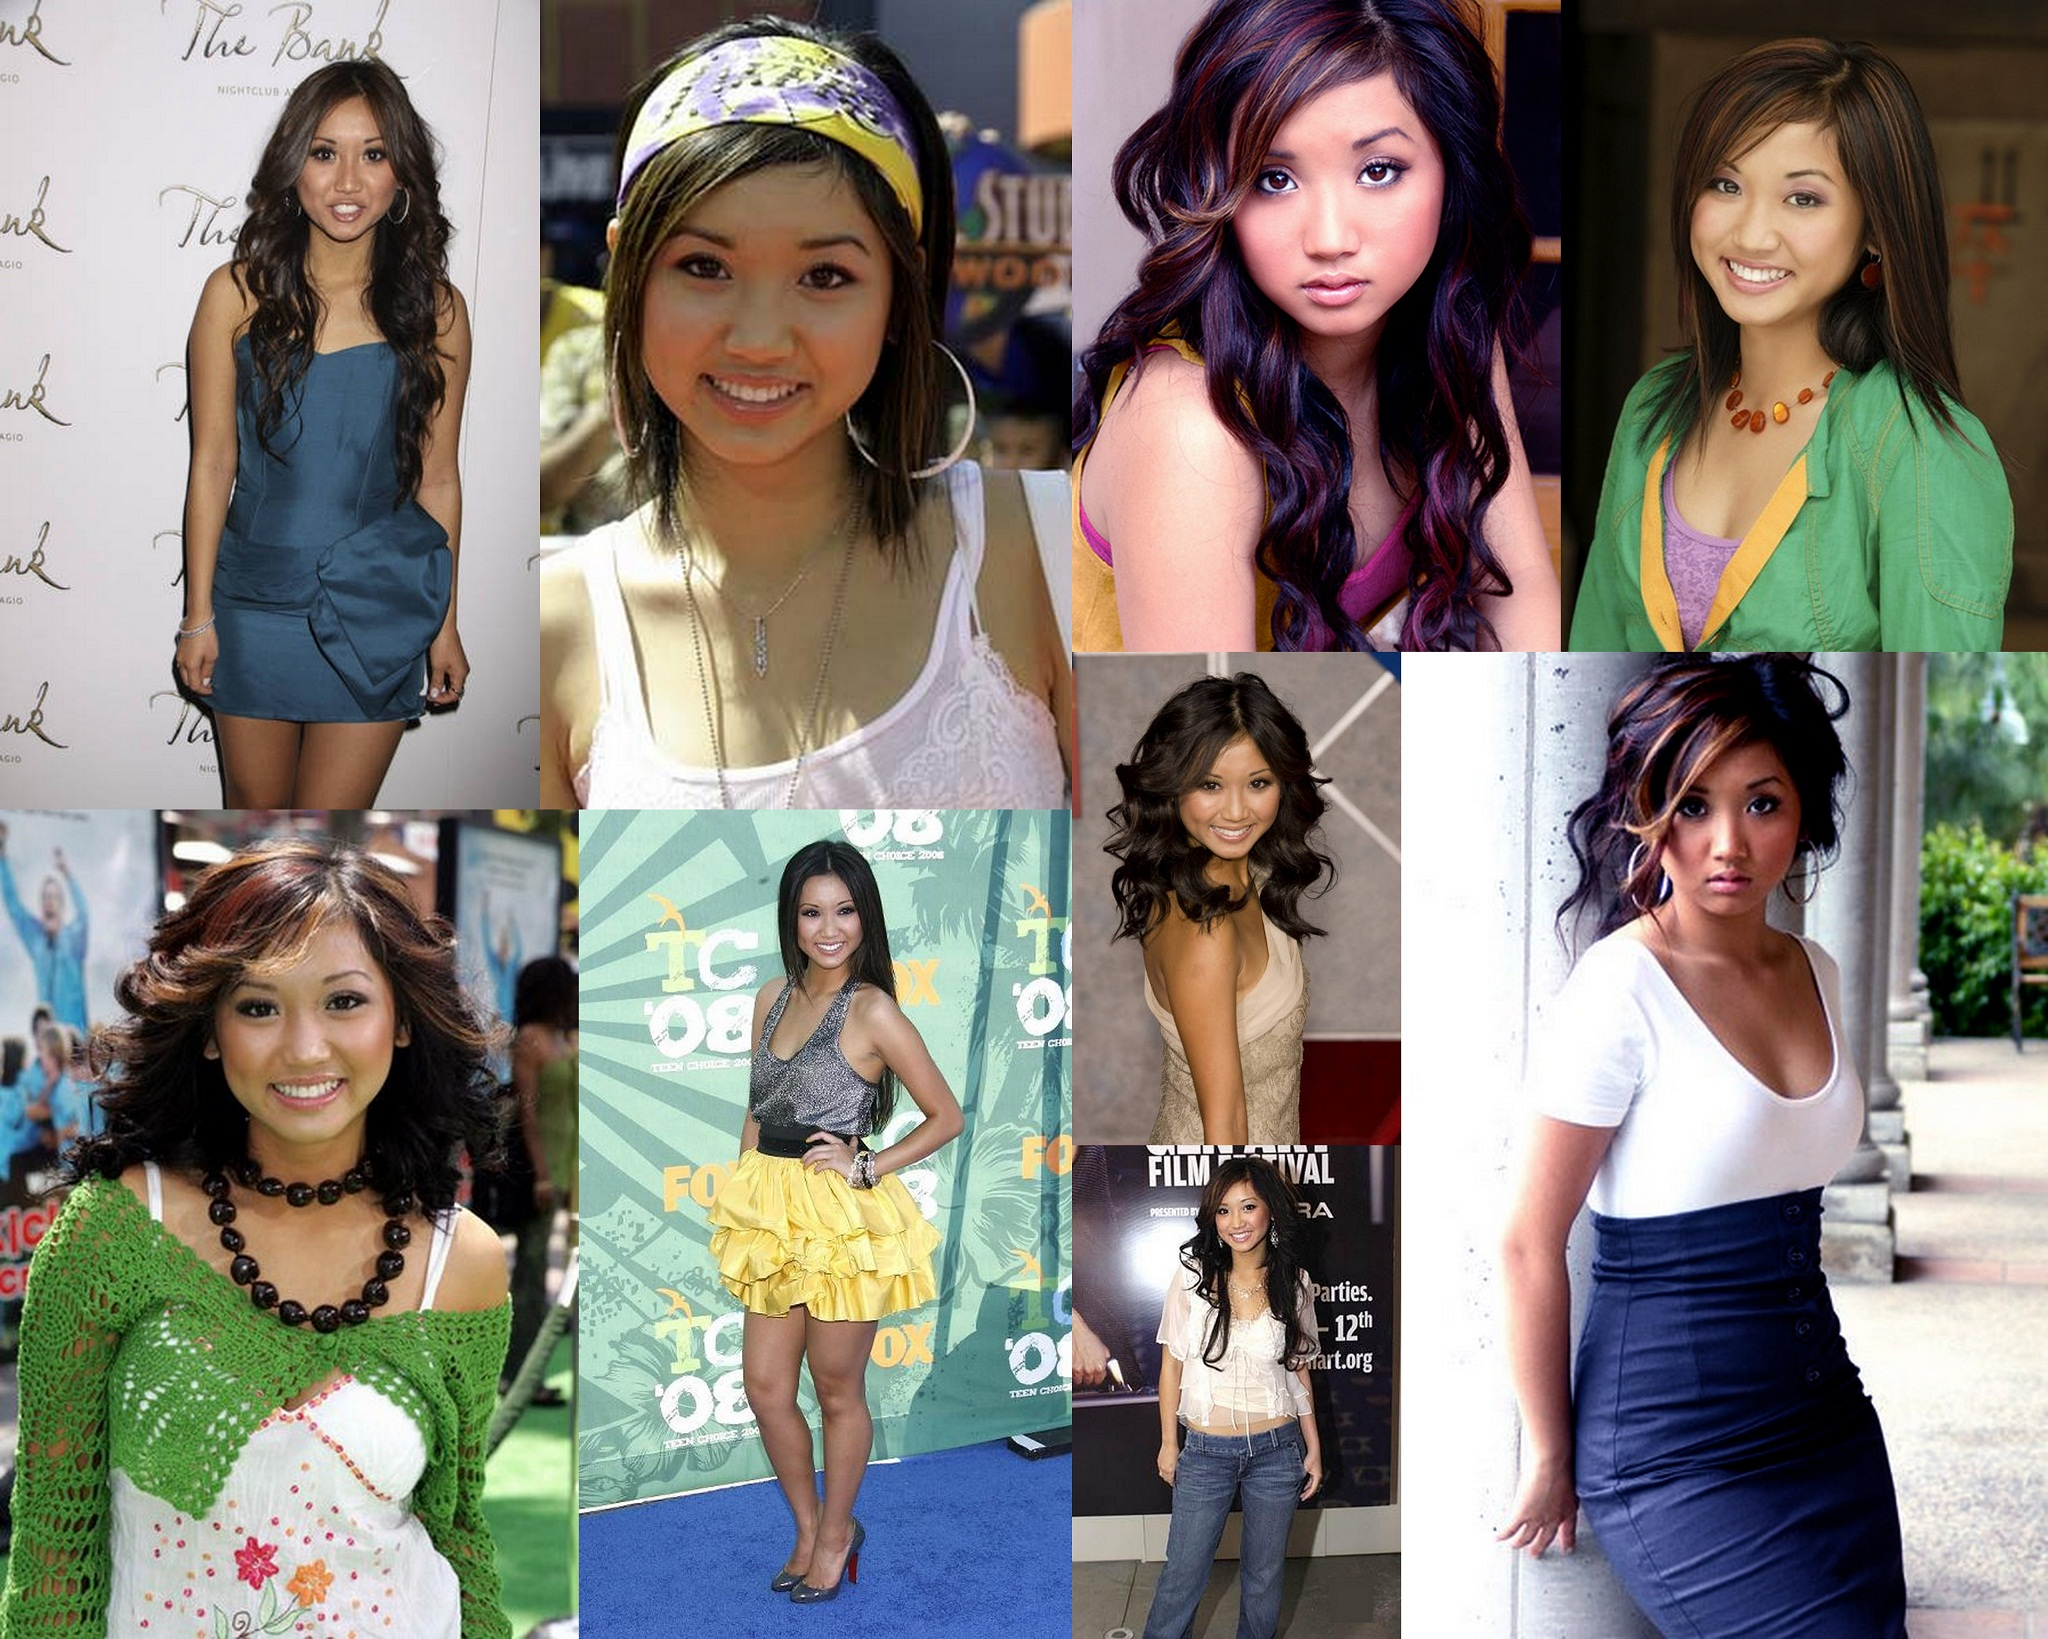 brenda song wallpaper. Here#39;s Brenda Song, who can